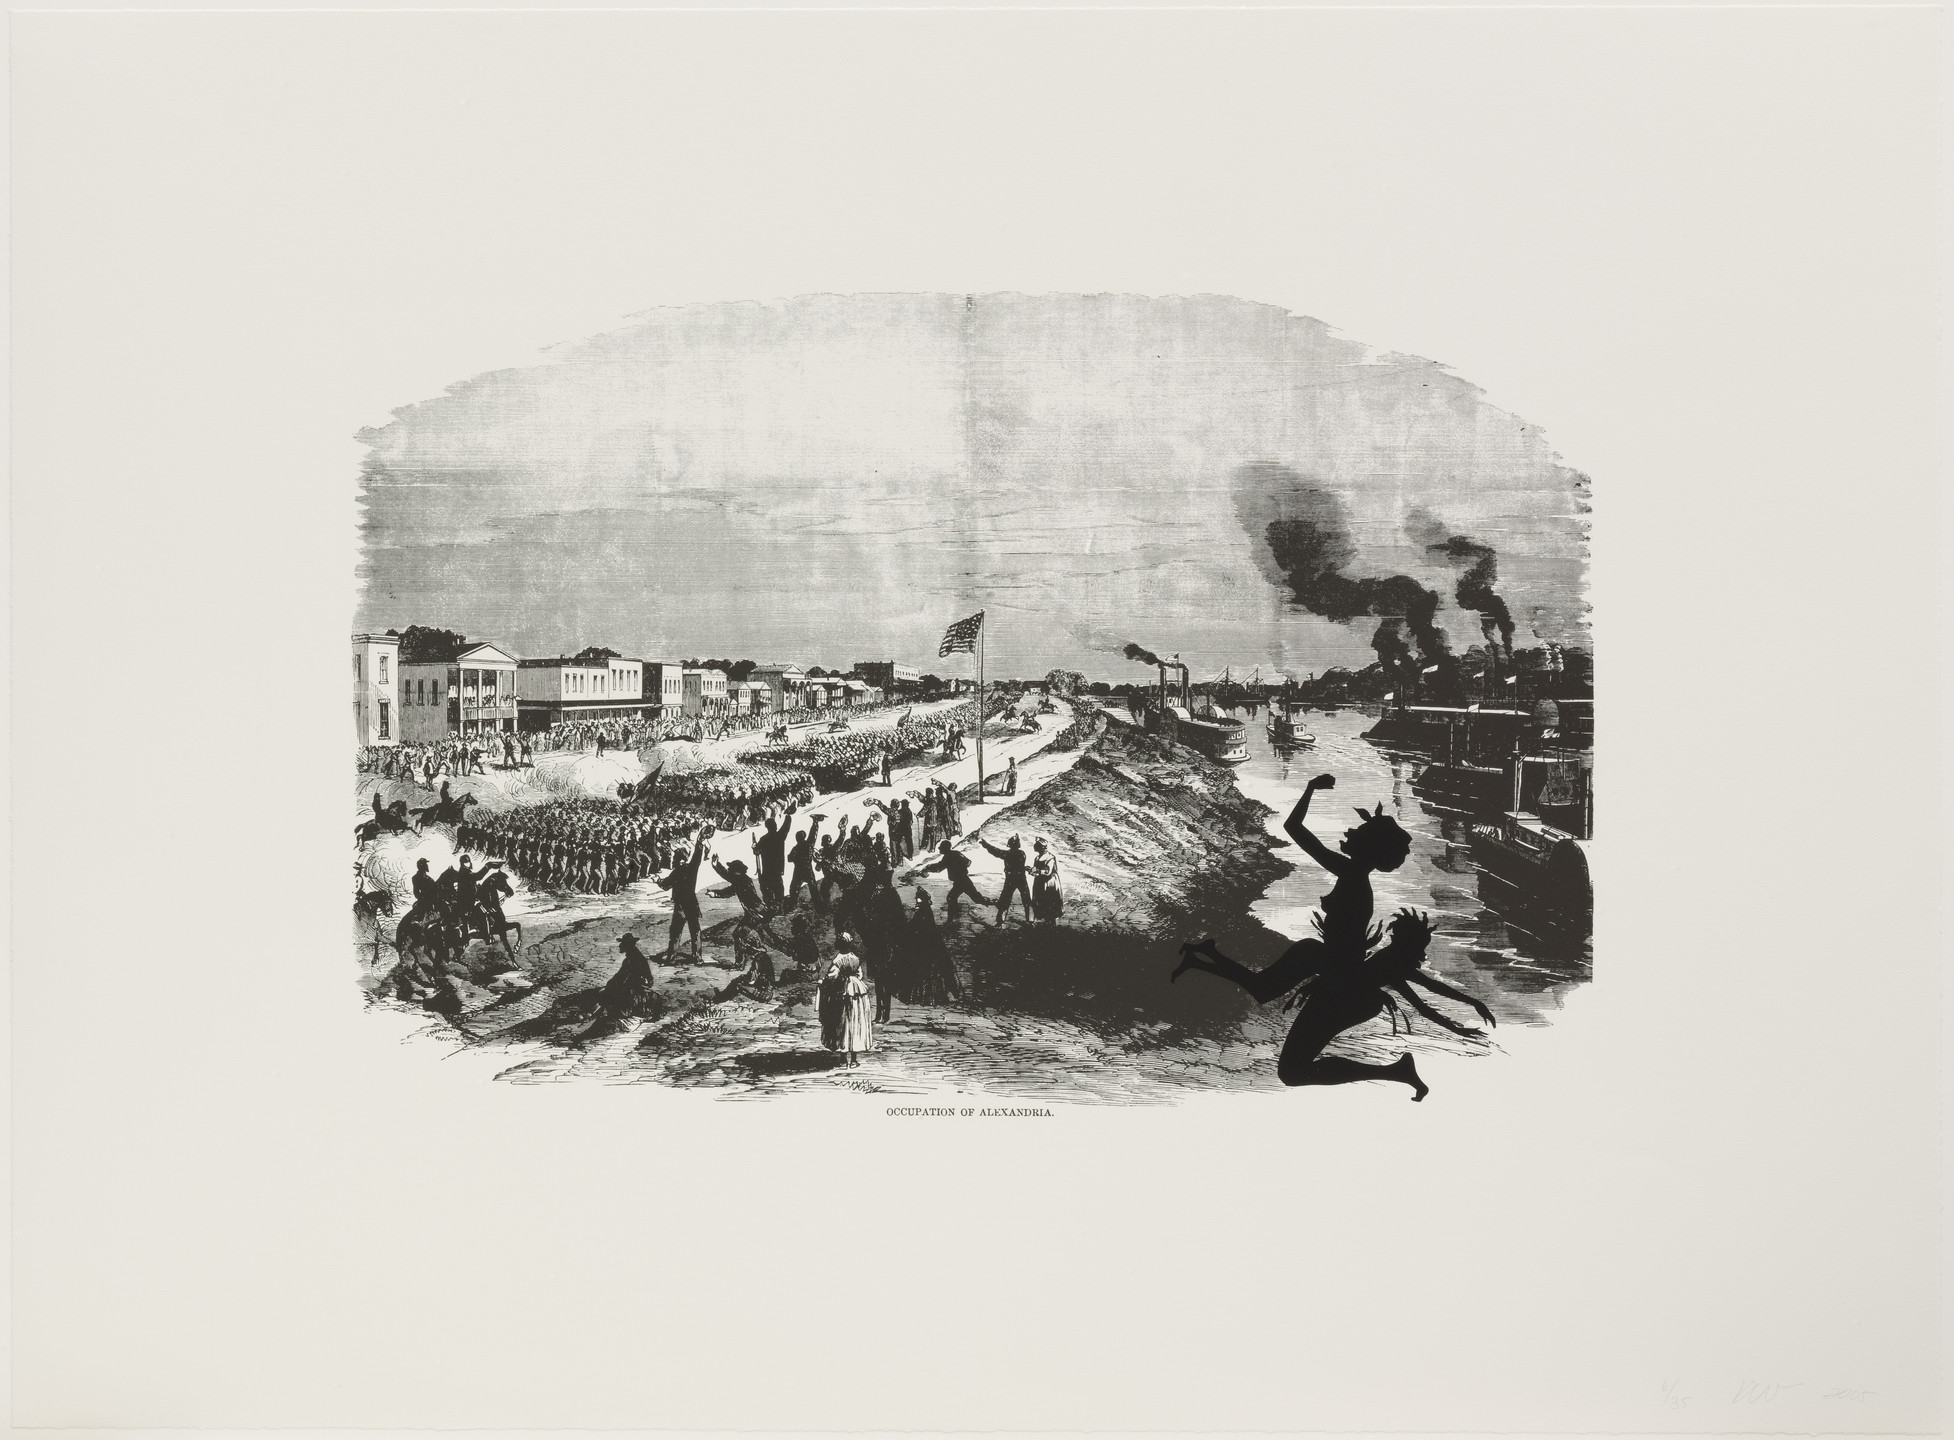 Kara Walker. Occupation of Alexandria from Harper's Pictorial History of the Civil War (Annotated). 2005